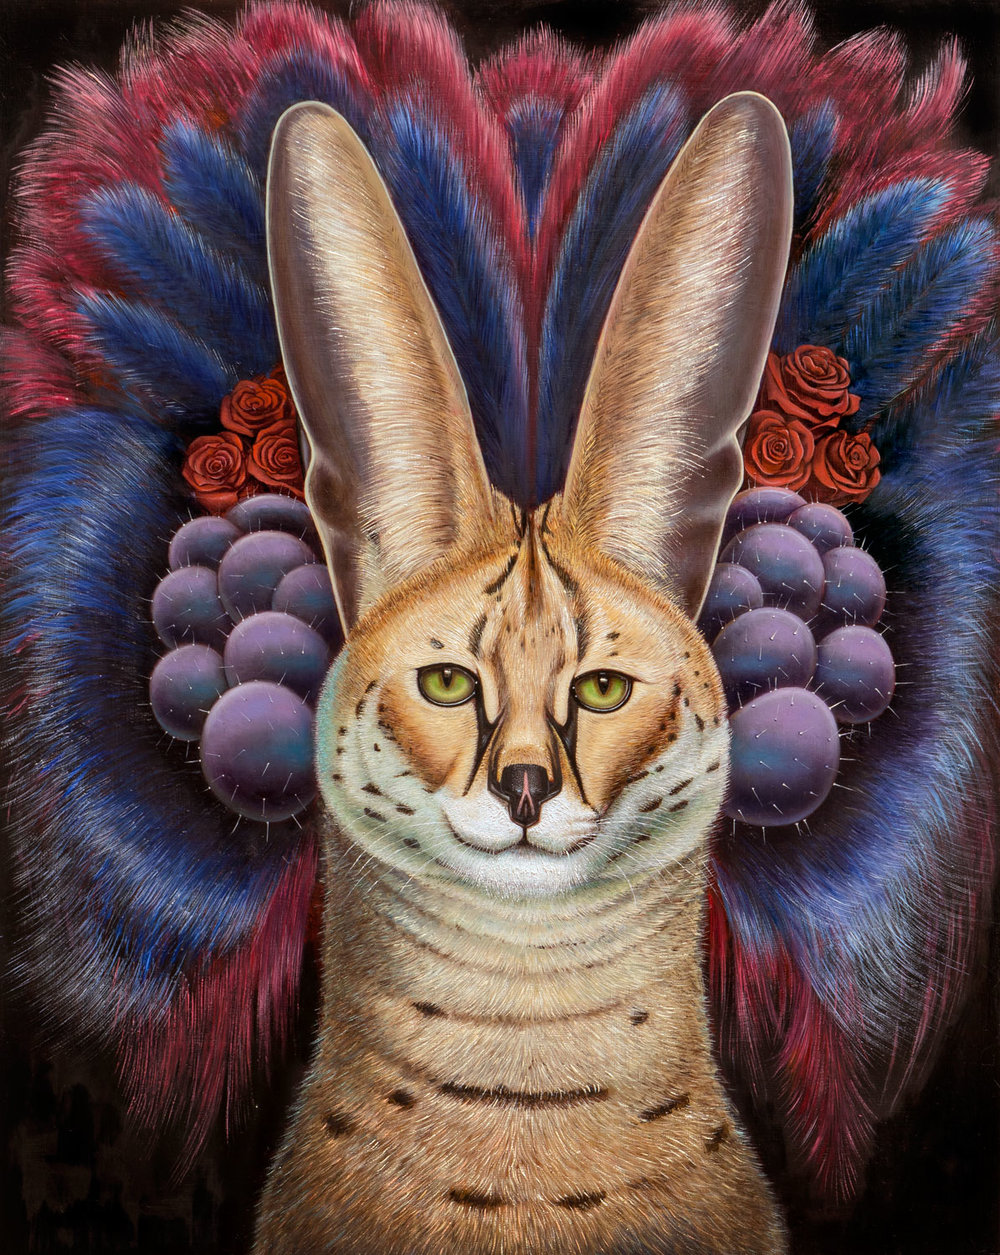 """El Felino de Oro""  2016, Oil on Wood Panel, 20 x 16 in.   Inquire"